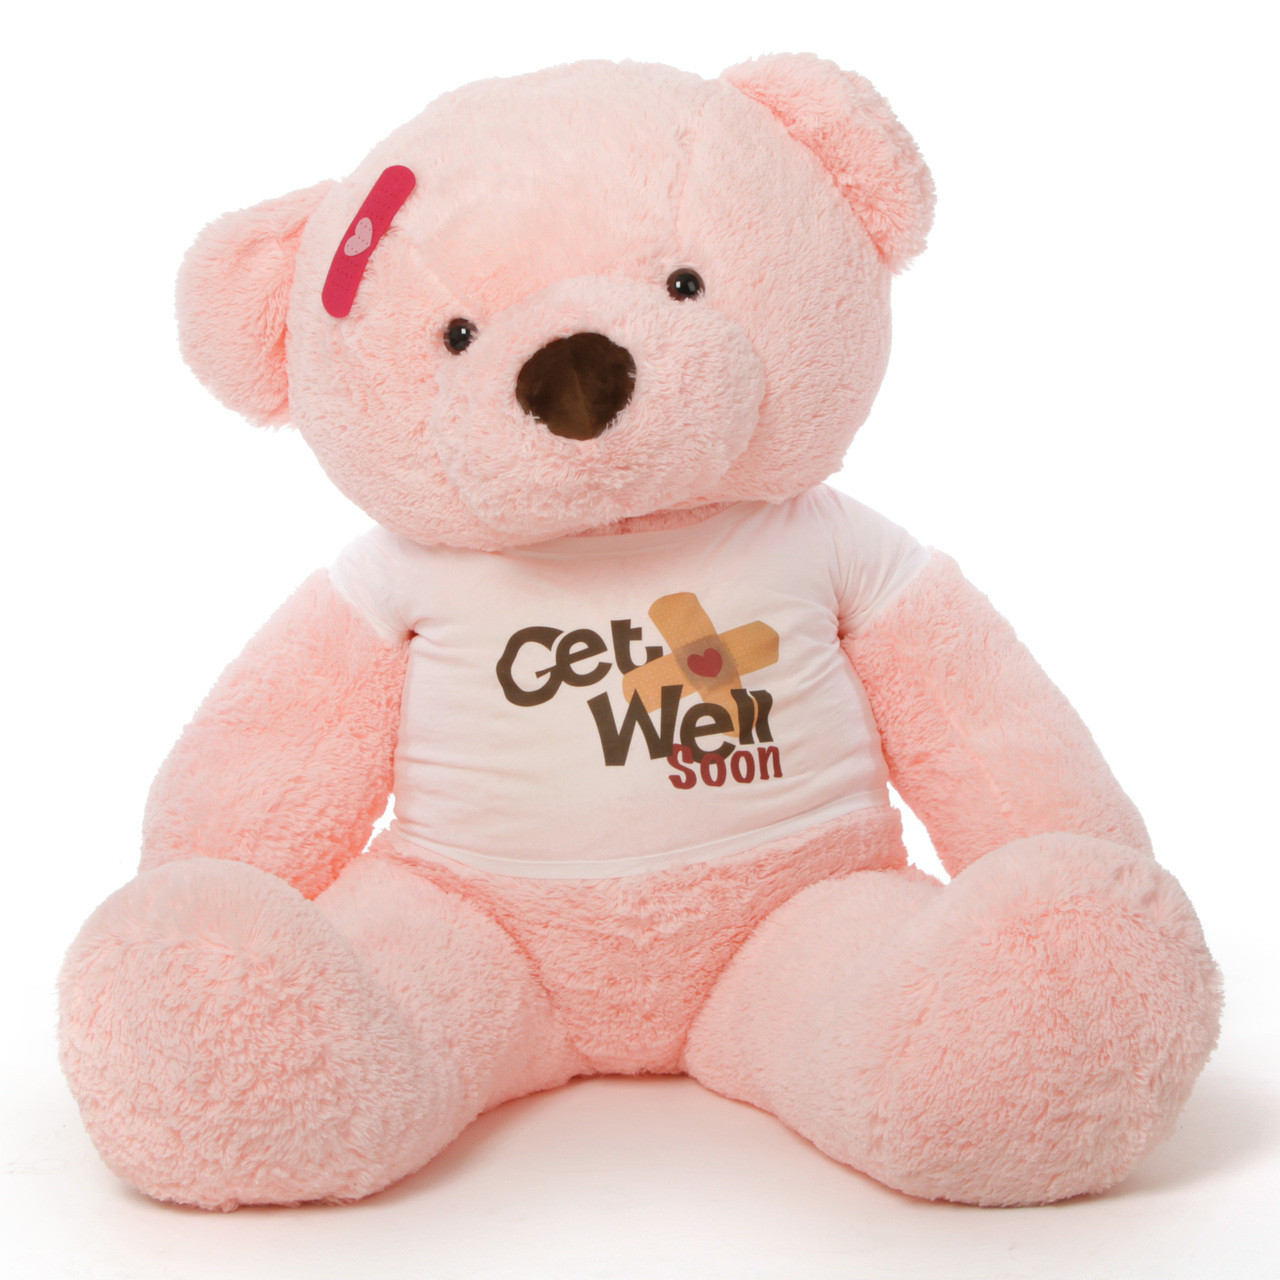 5ft Get Well Soon Pink Teddy Bear, Gigi Chubs